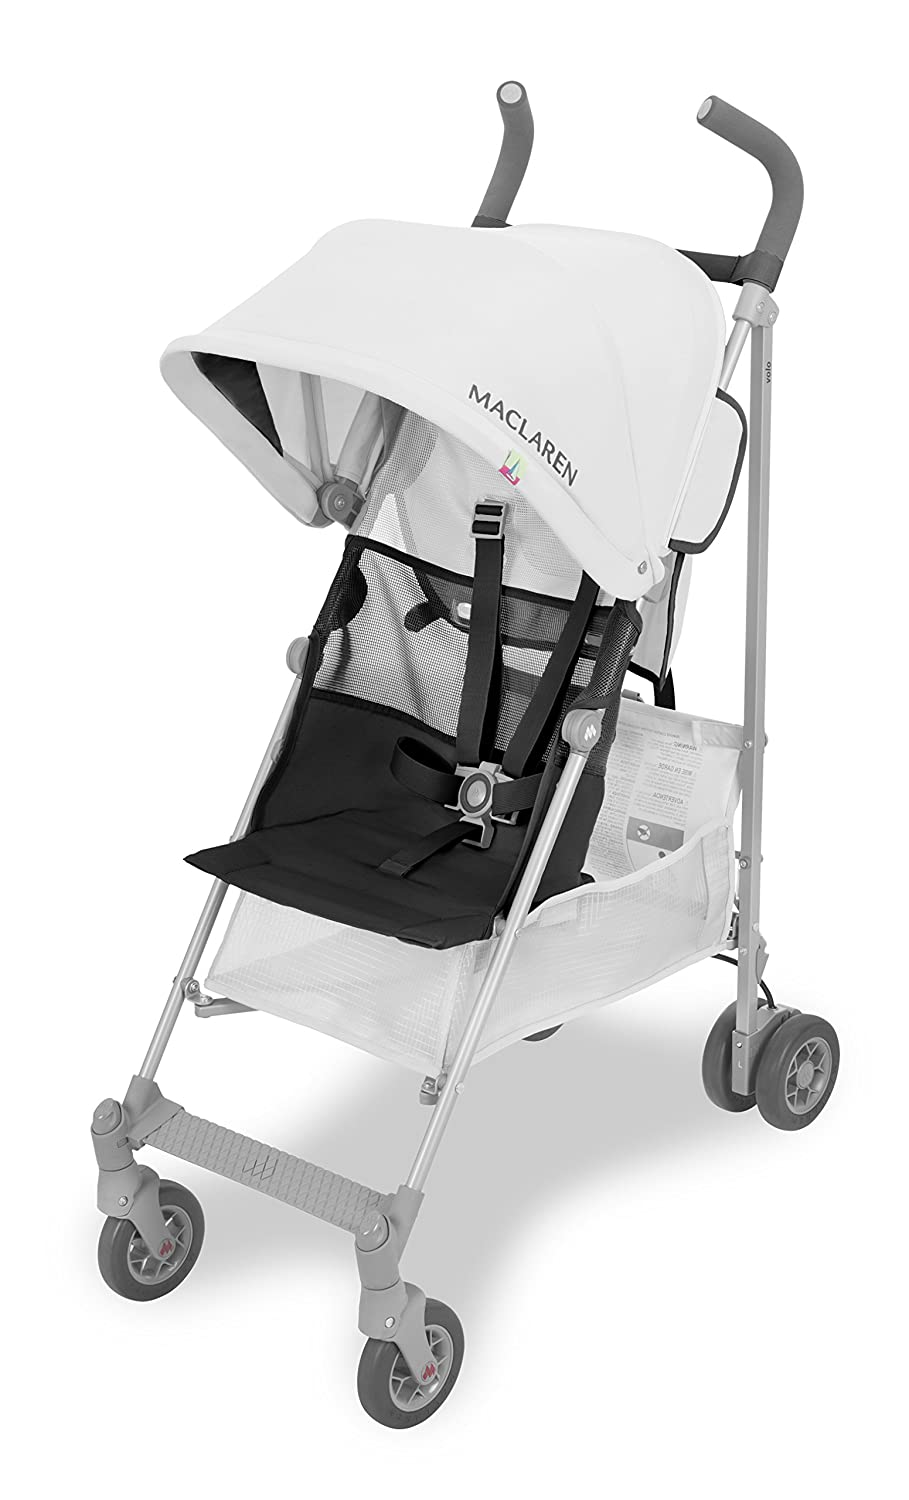 compact lightweight Maclaren Techno XT Stroller- Full-featured Sovereign/™ Lifetime Warranty Newborn Safety System/™ extended UPF 50+//waterproof canopy For newborns and up to 55lb